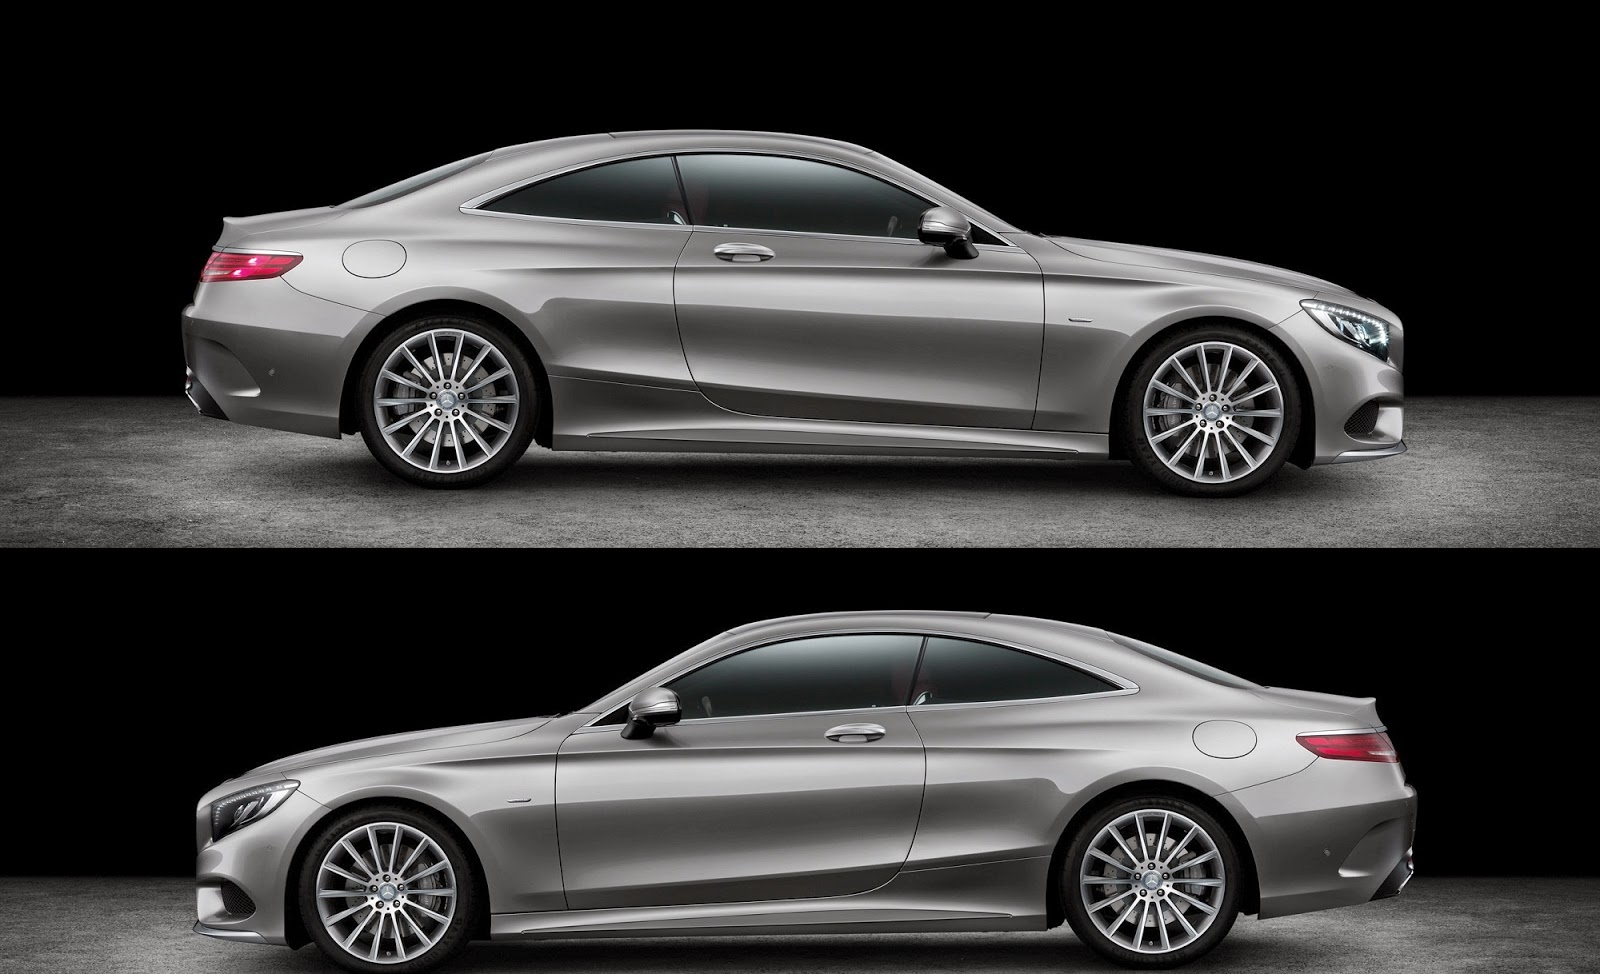 New 2015 mercedes benz s class coupe car reviews new for Mercedes benz new cars 2015